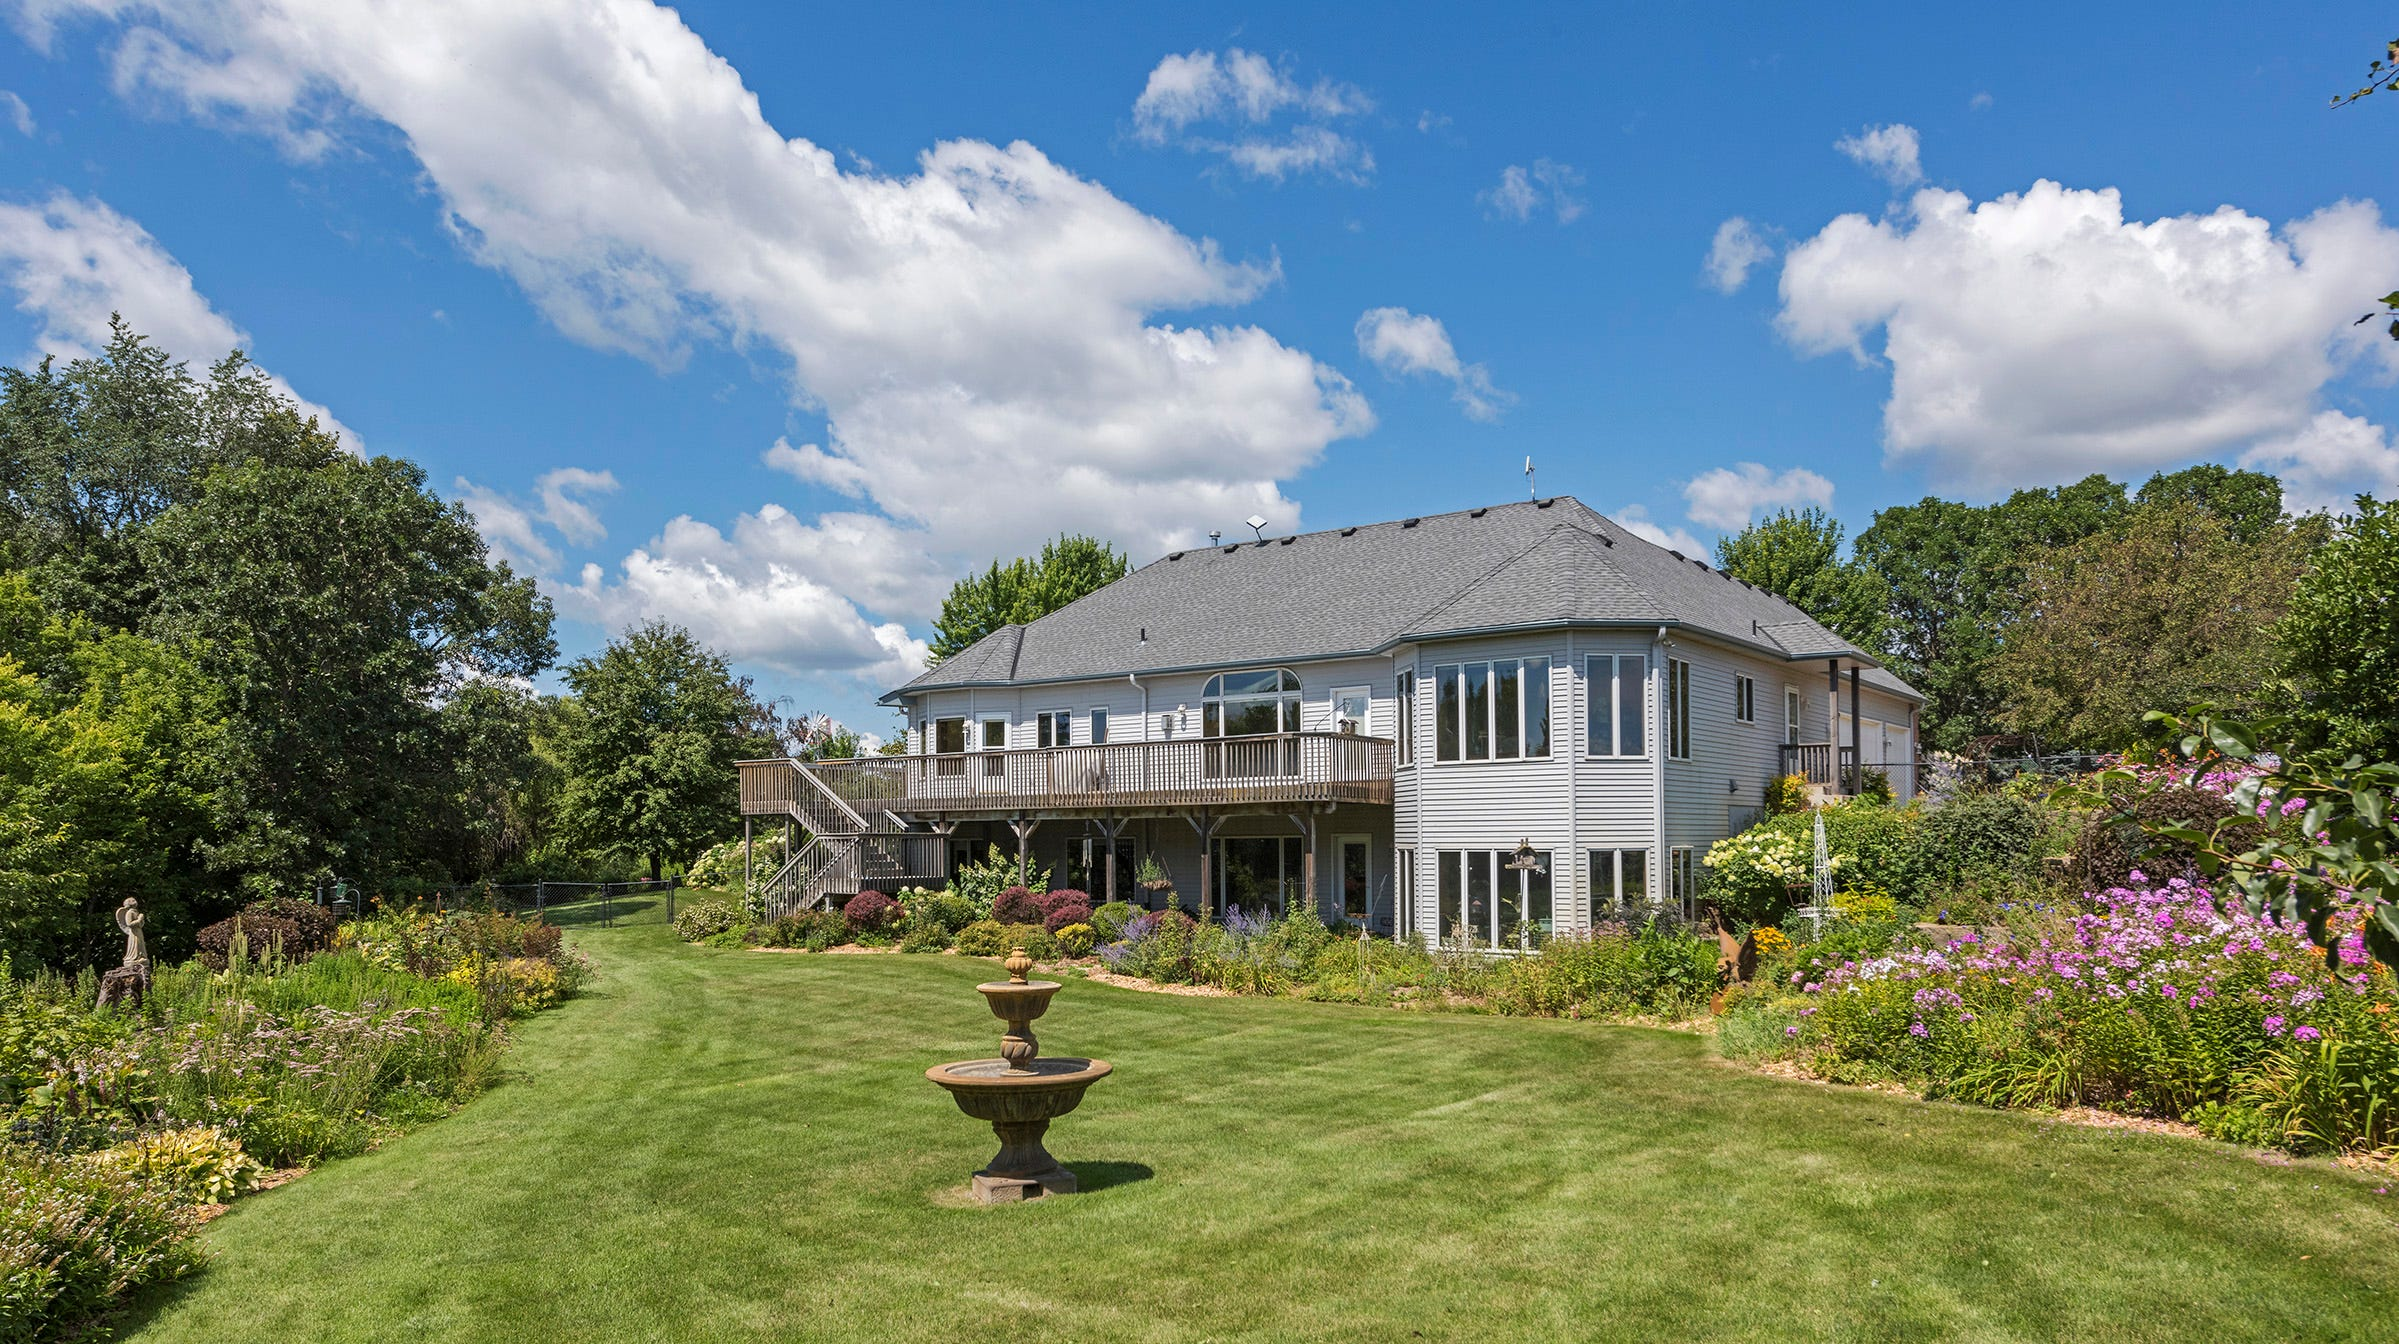 The lawn immediately surrounding the home is lavishly adorned with gorgeous gardens that are a green thumb's dream.